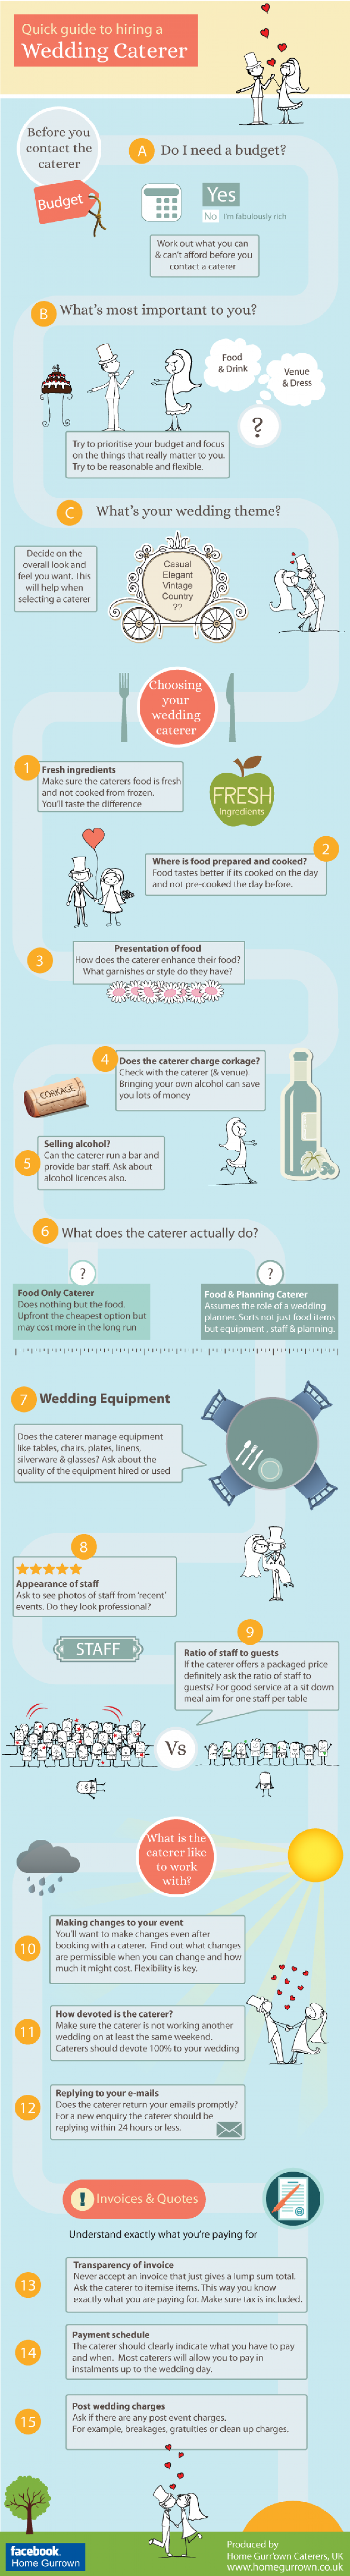 How to choose a wedding caterer Infographic